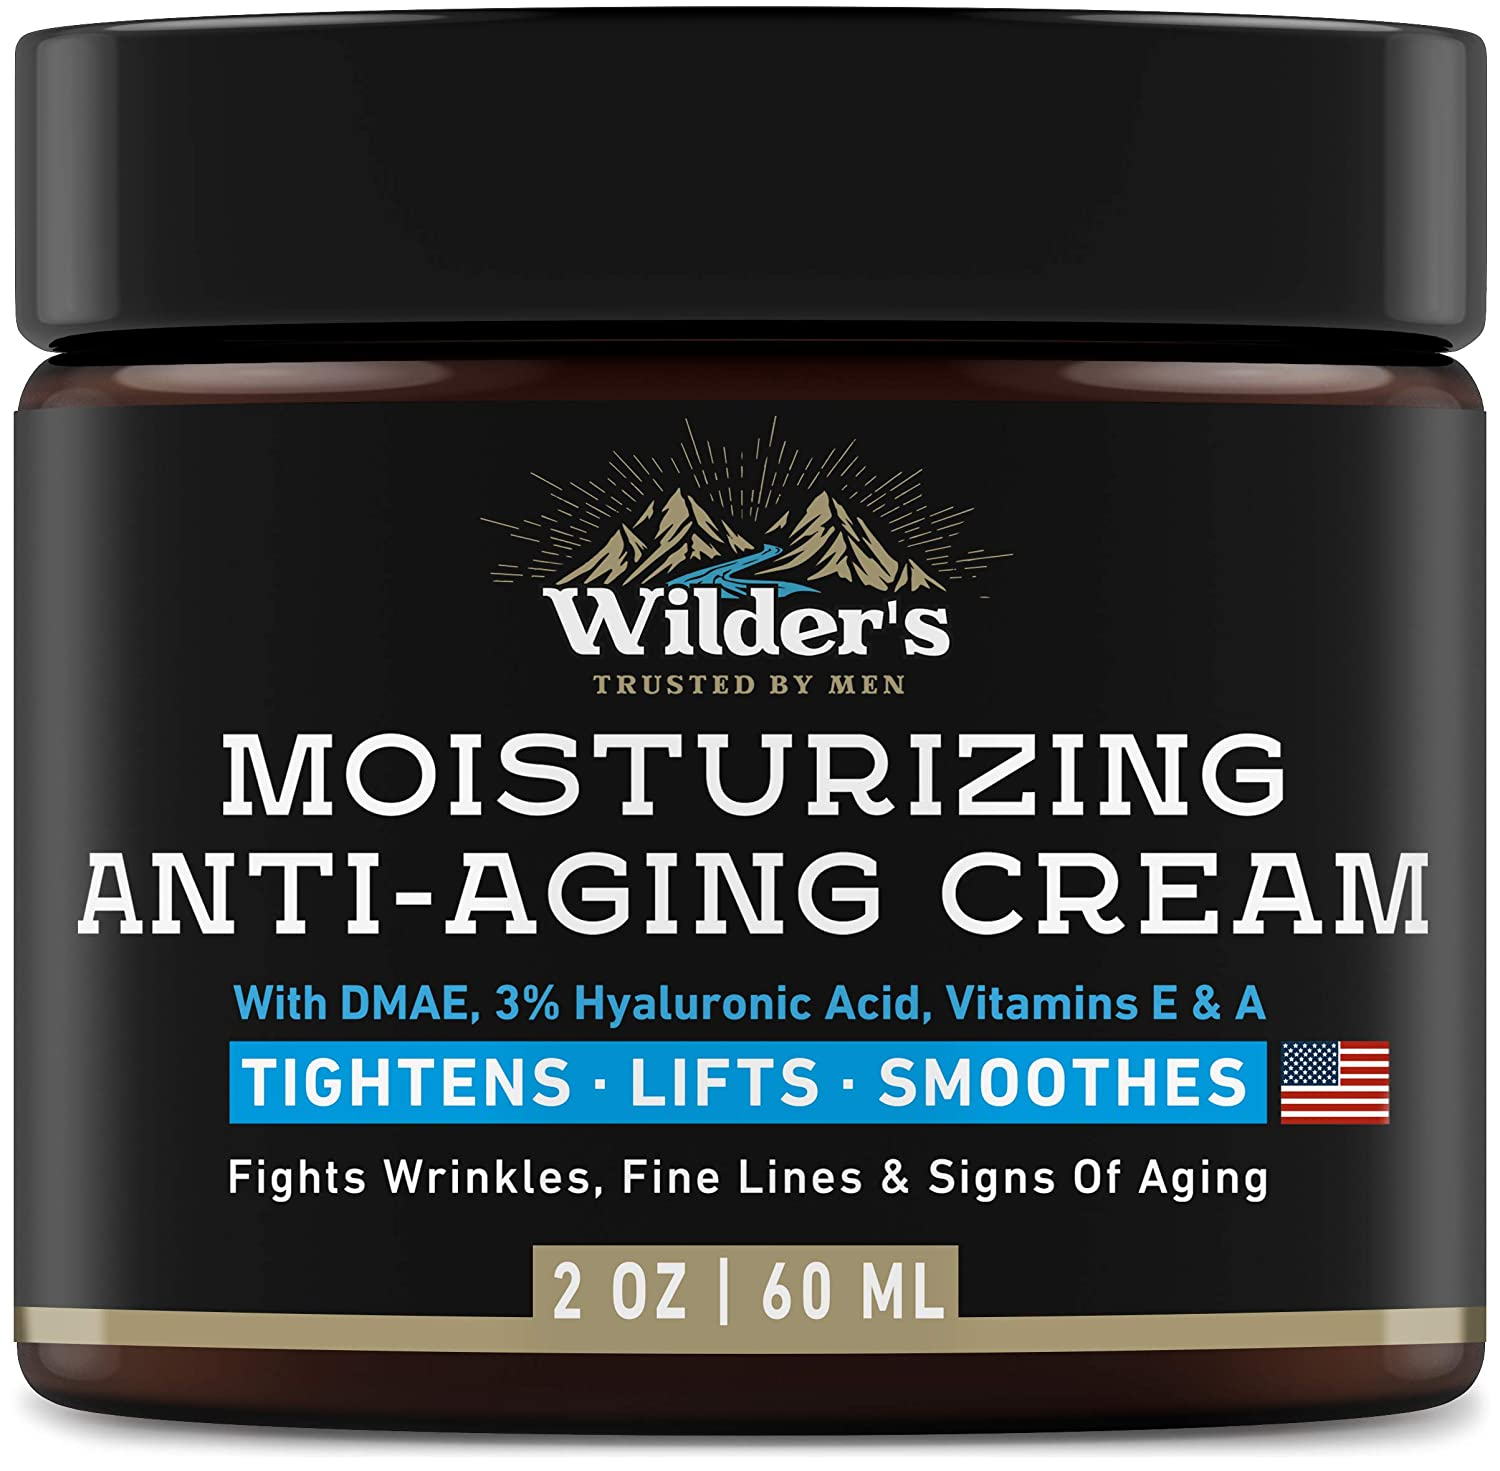 Men's Anti Aging Face Cream Moisturizer - Premium Skin Care for Men with Collagen, Retinol, Hyaluronic Acid - Made in USA - Fast Anti-Age Effect Day & Night - Wrinkle Free Facial Men Moisturizer 2Oz: Beauty